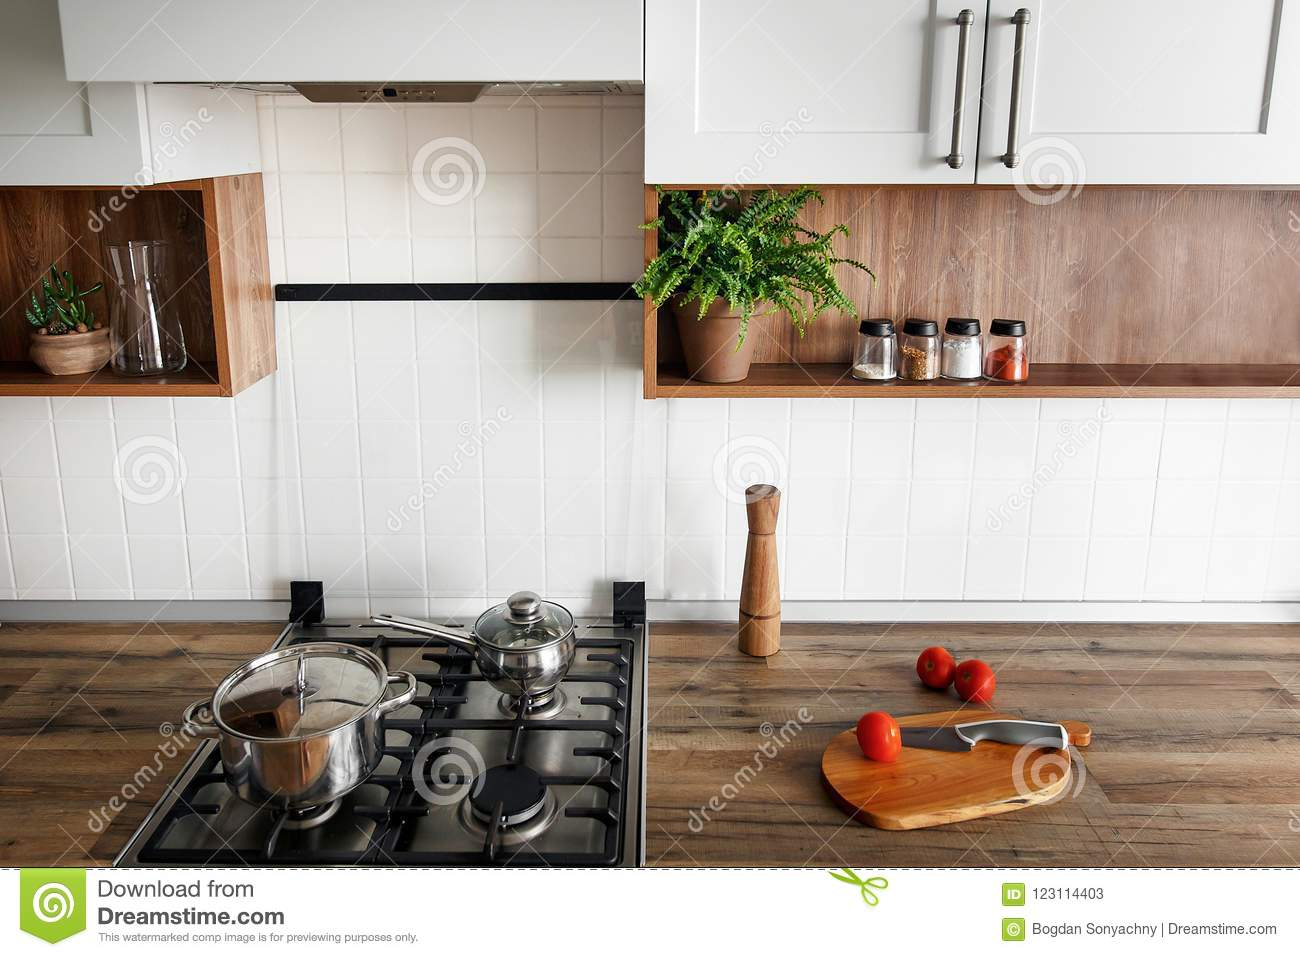 Download wooden board with knife tomatoes on modern kitchen countertop a stock image image